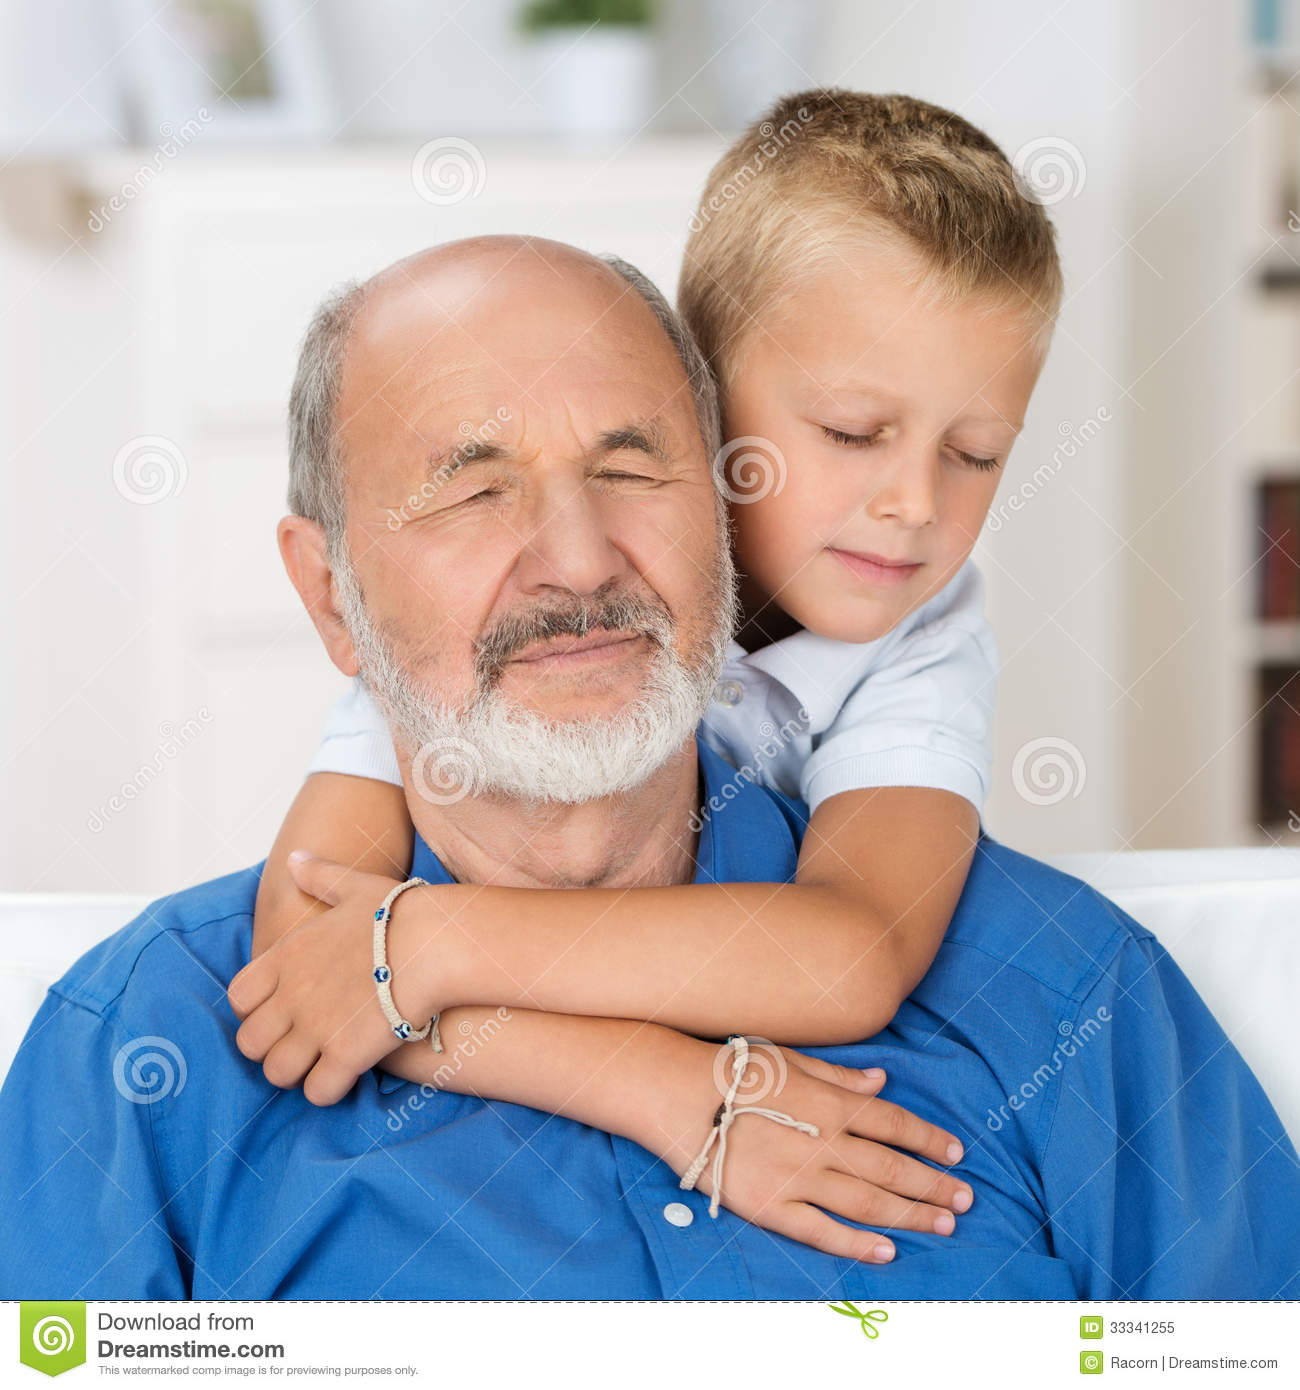 ... young grandson hugs him from behind with his arms around his neck